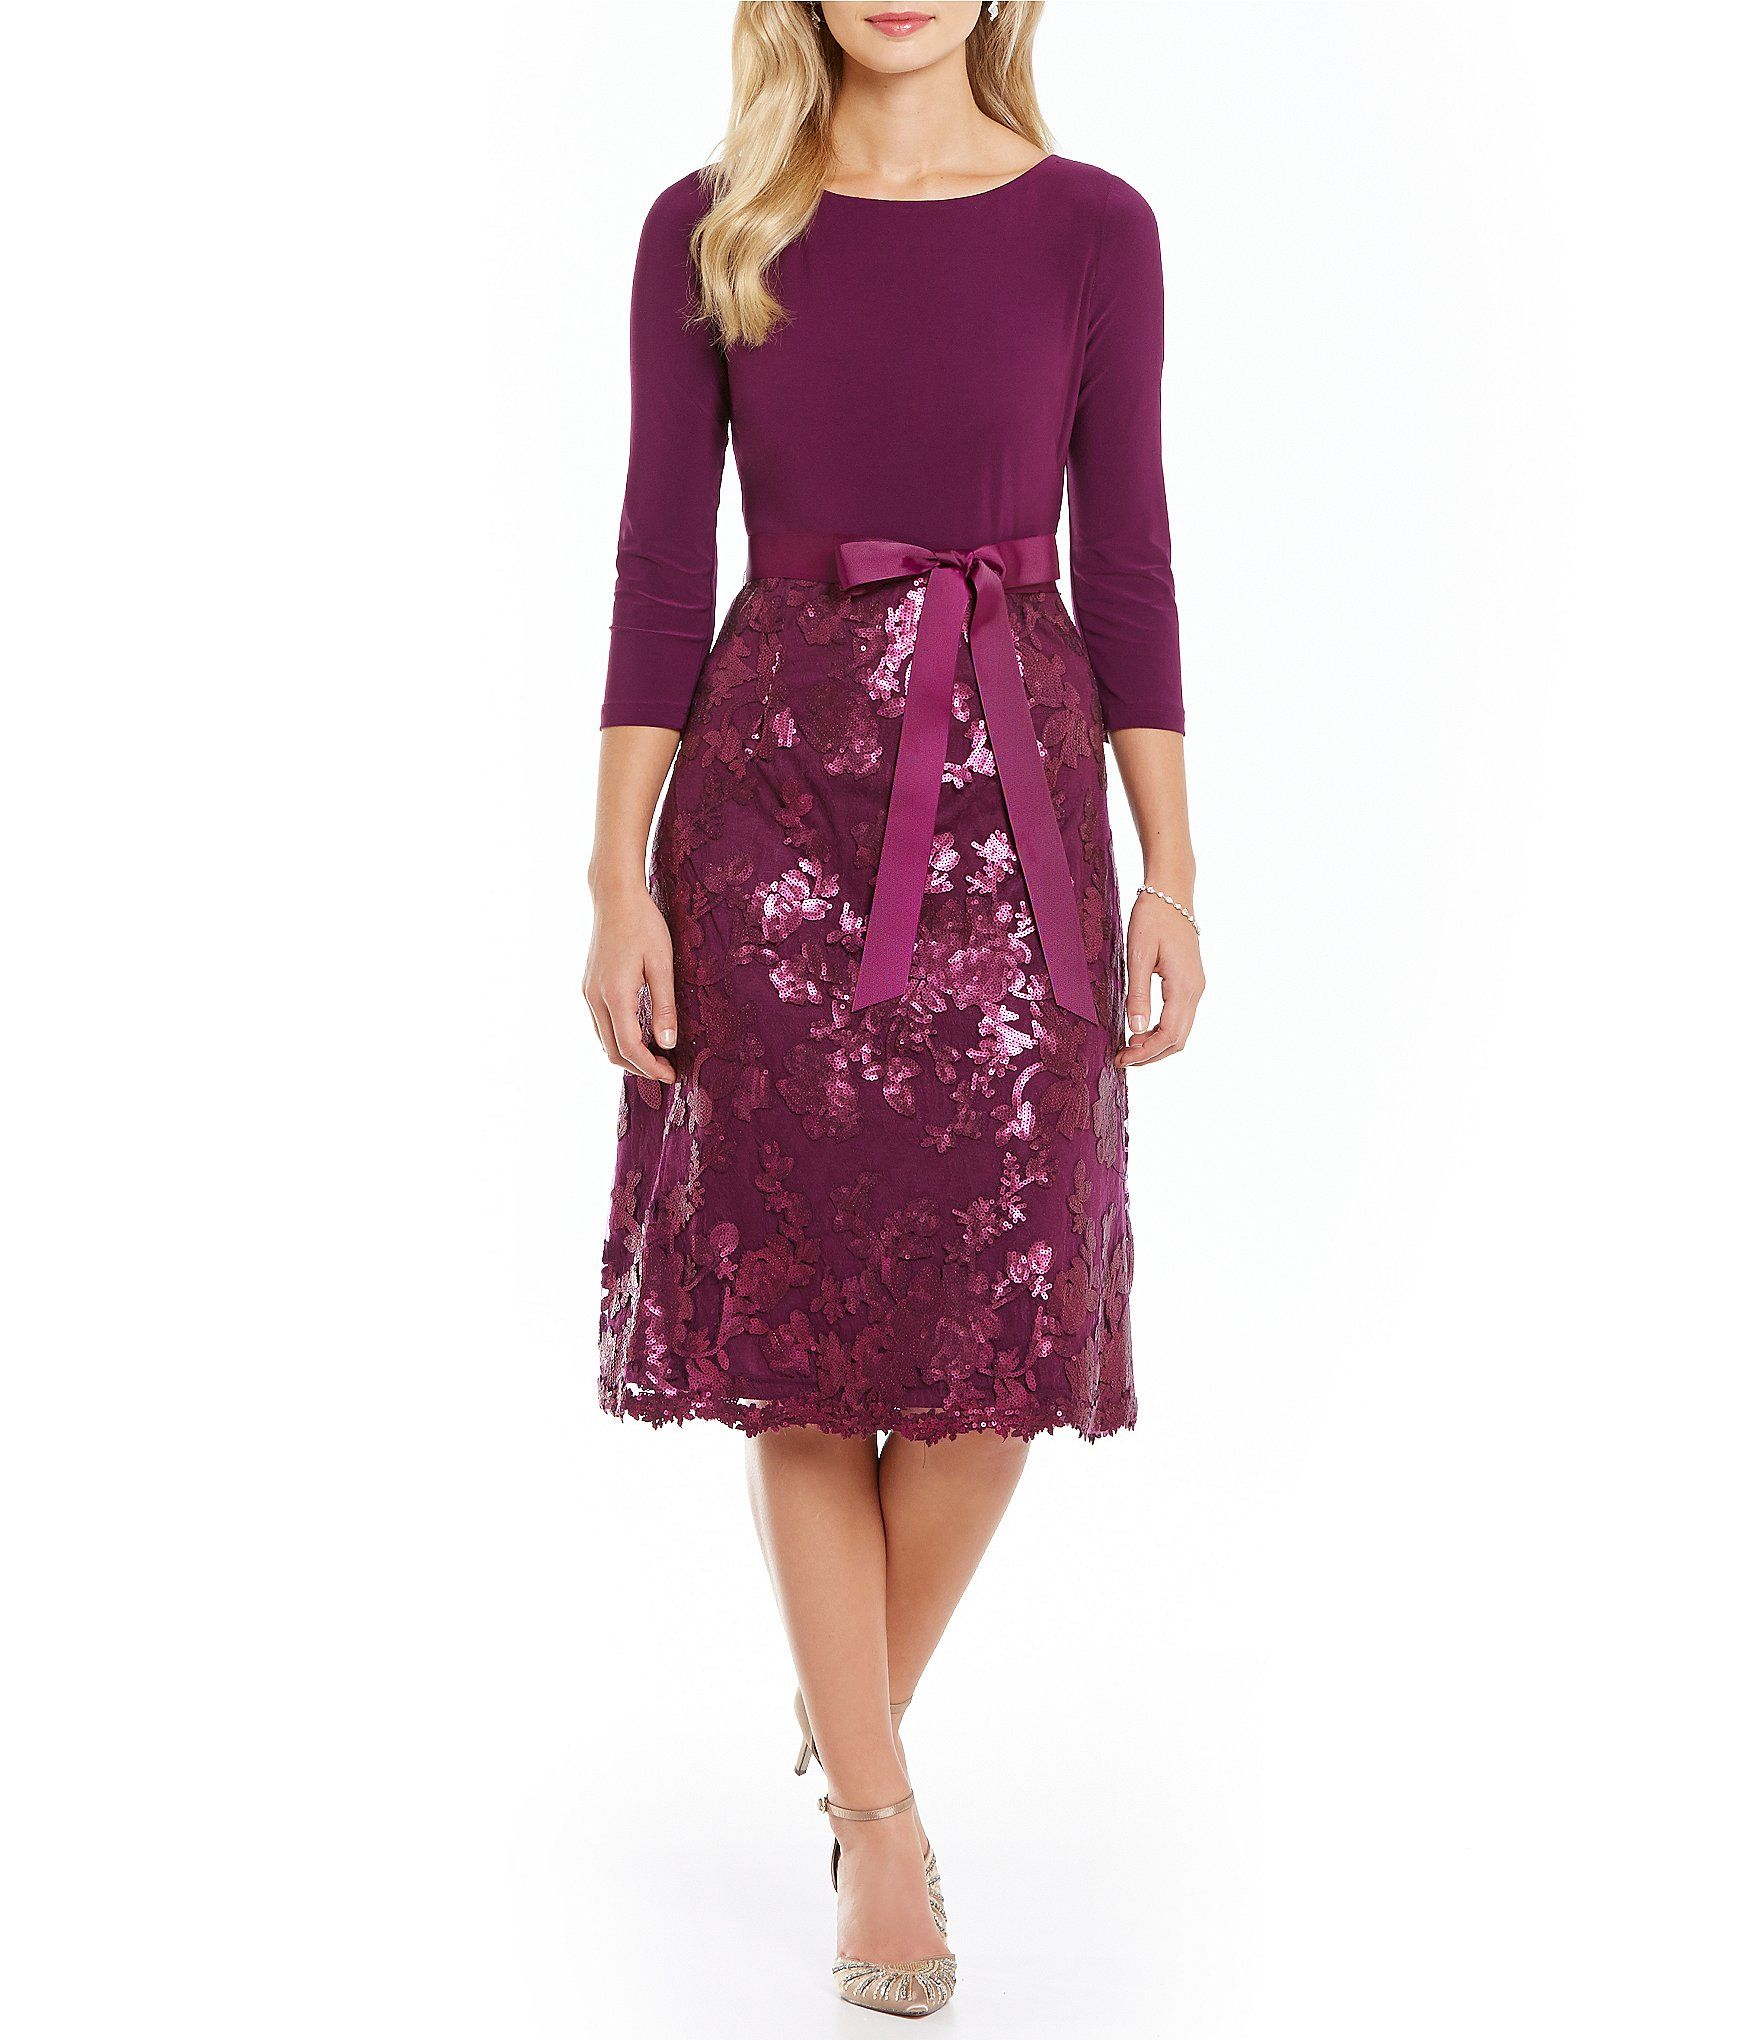 Adrianna papell jersey top sequin fit and flare dress dillards adrianna papell jersey top sequin fit and flare dress dillards ombrellifo Gallery